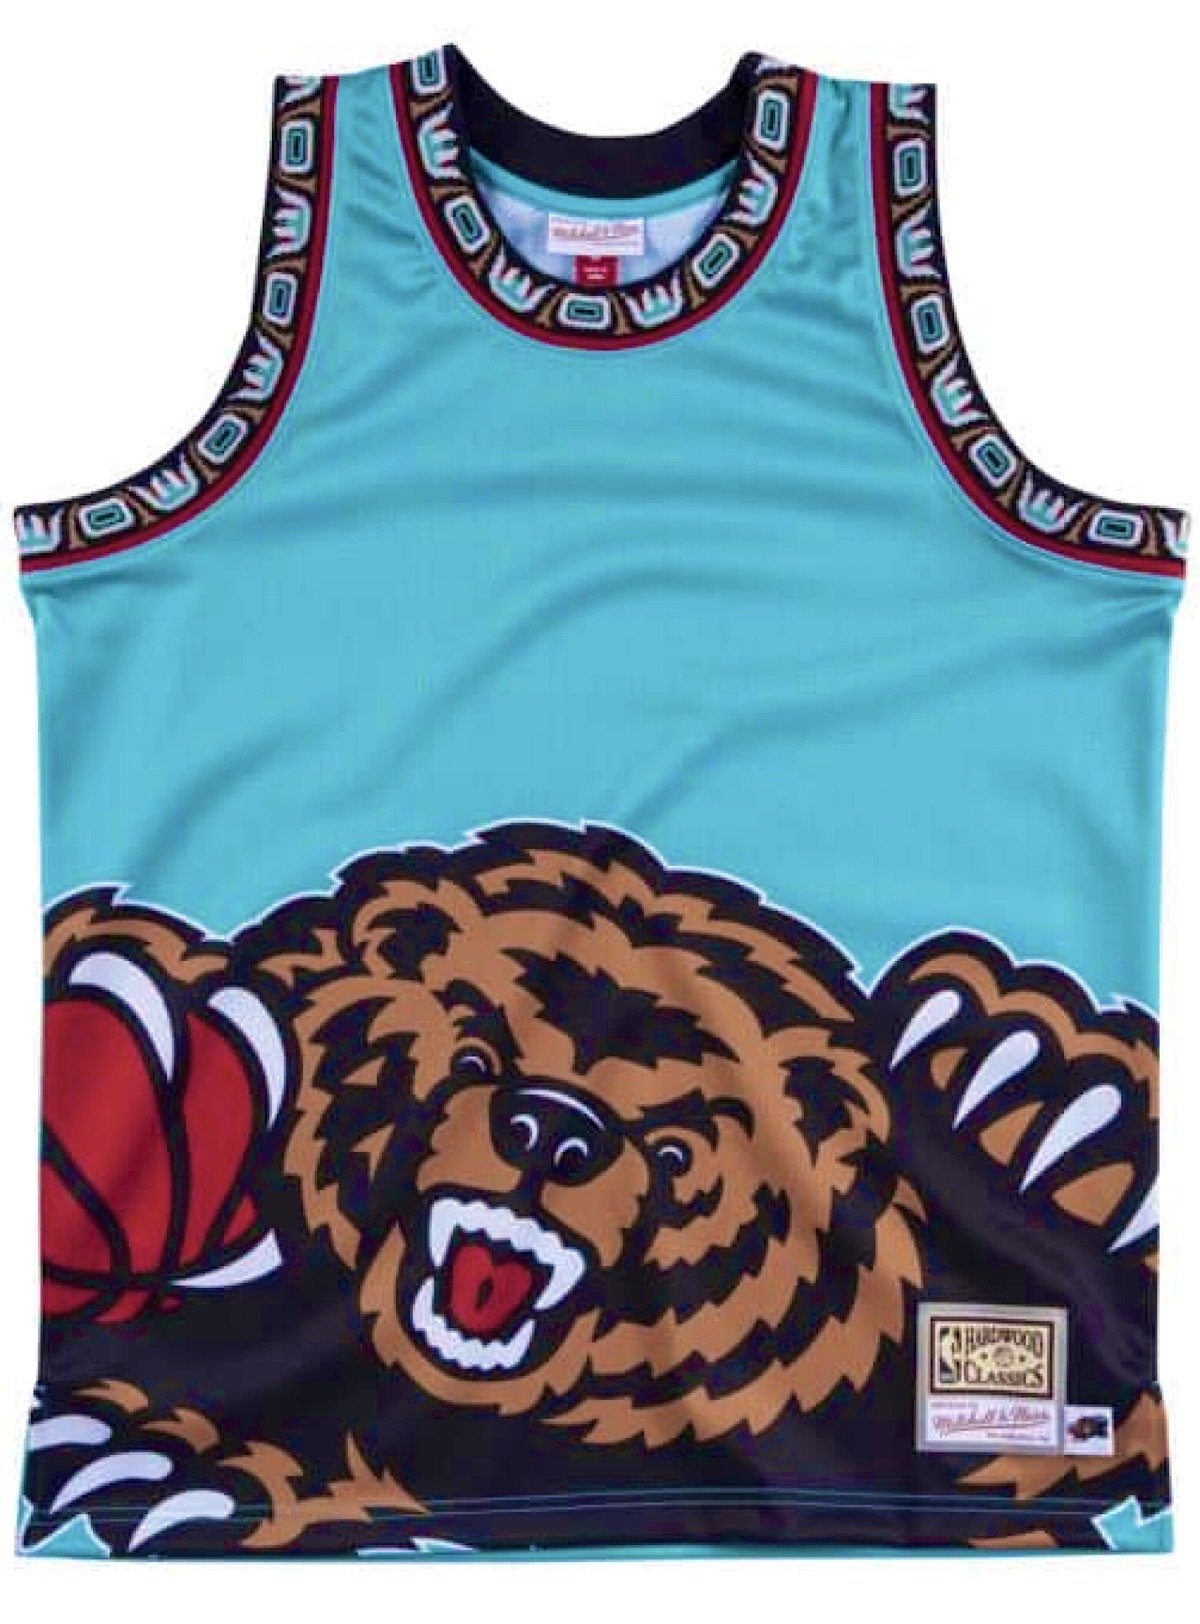 Mitchell & Ness Jersey - NBA Big Face Grizzlies - Aqua